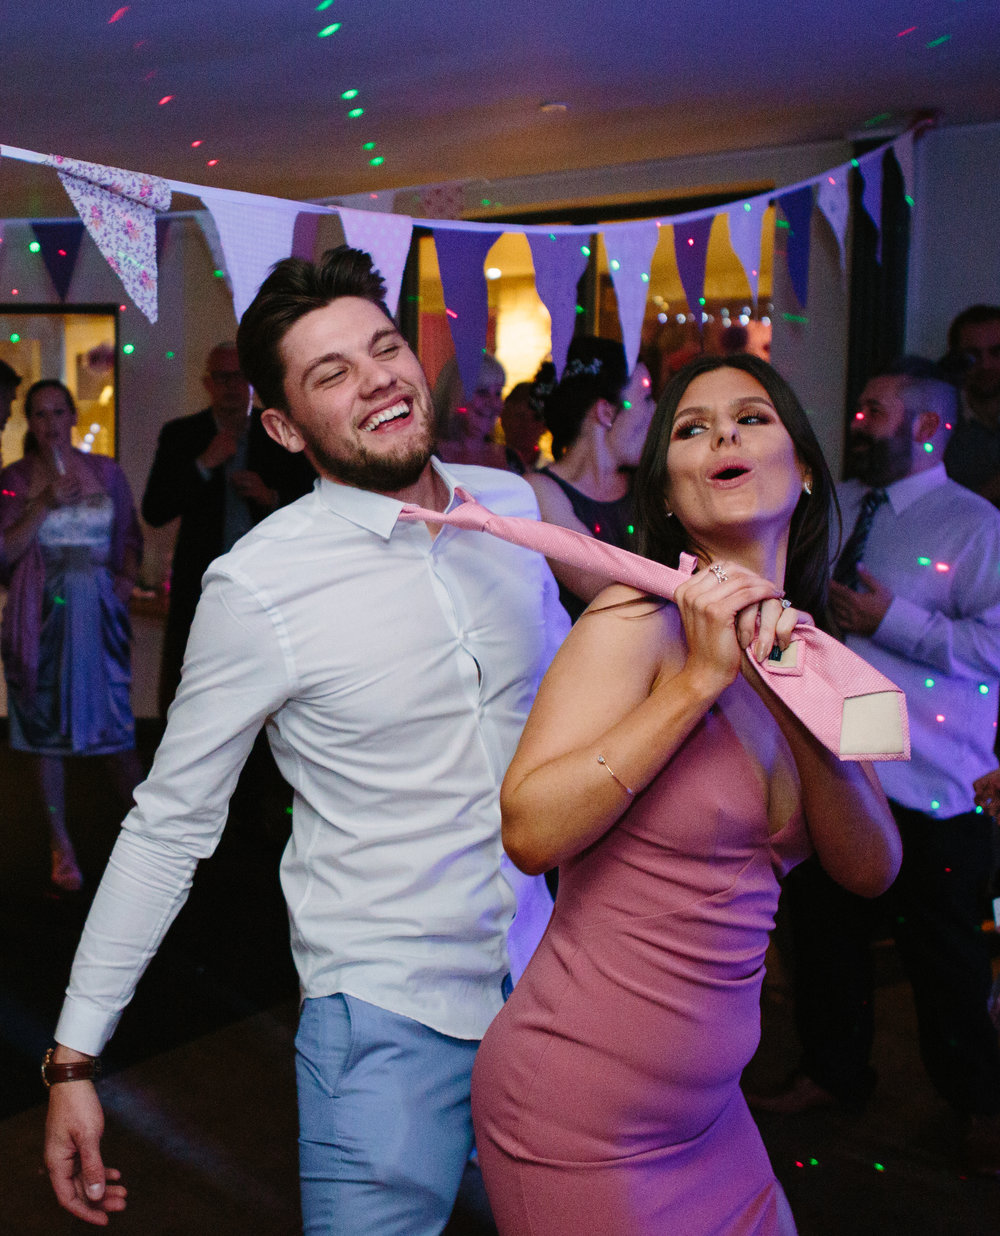 cotswalds-chipping-norton-oxfordshire-london-wedding-photography-dance-53